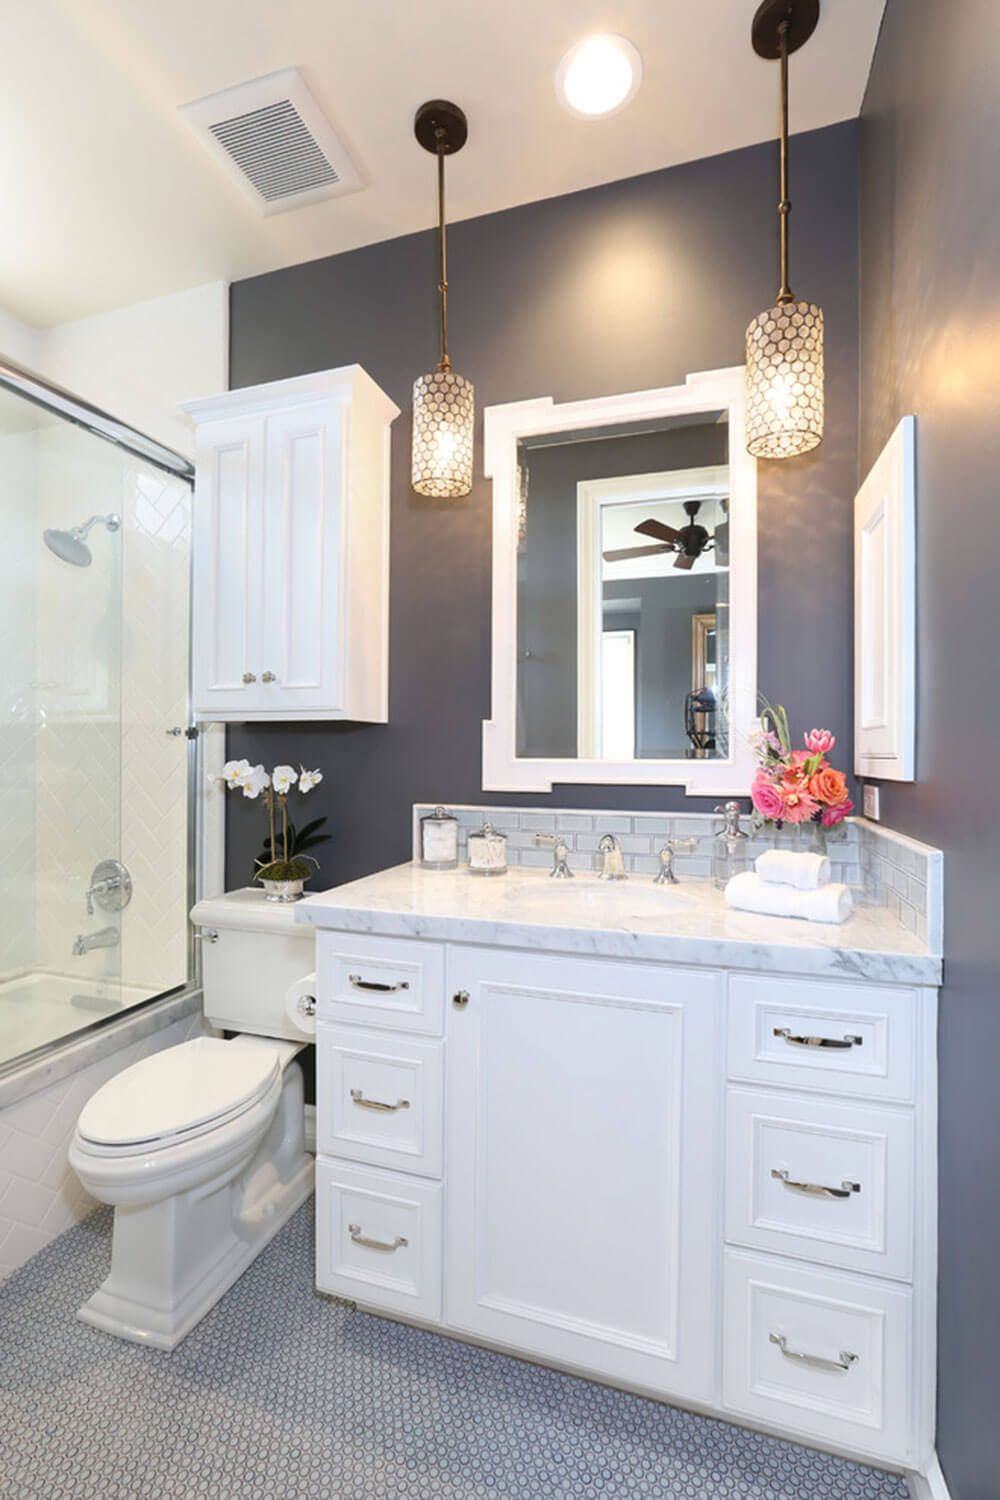 32 Small Bathroom Design Ideas For Every Taste Bathroom Remodel Master Small Bathroom Remodel Beautiful Small Bathrooms